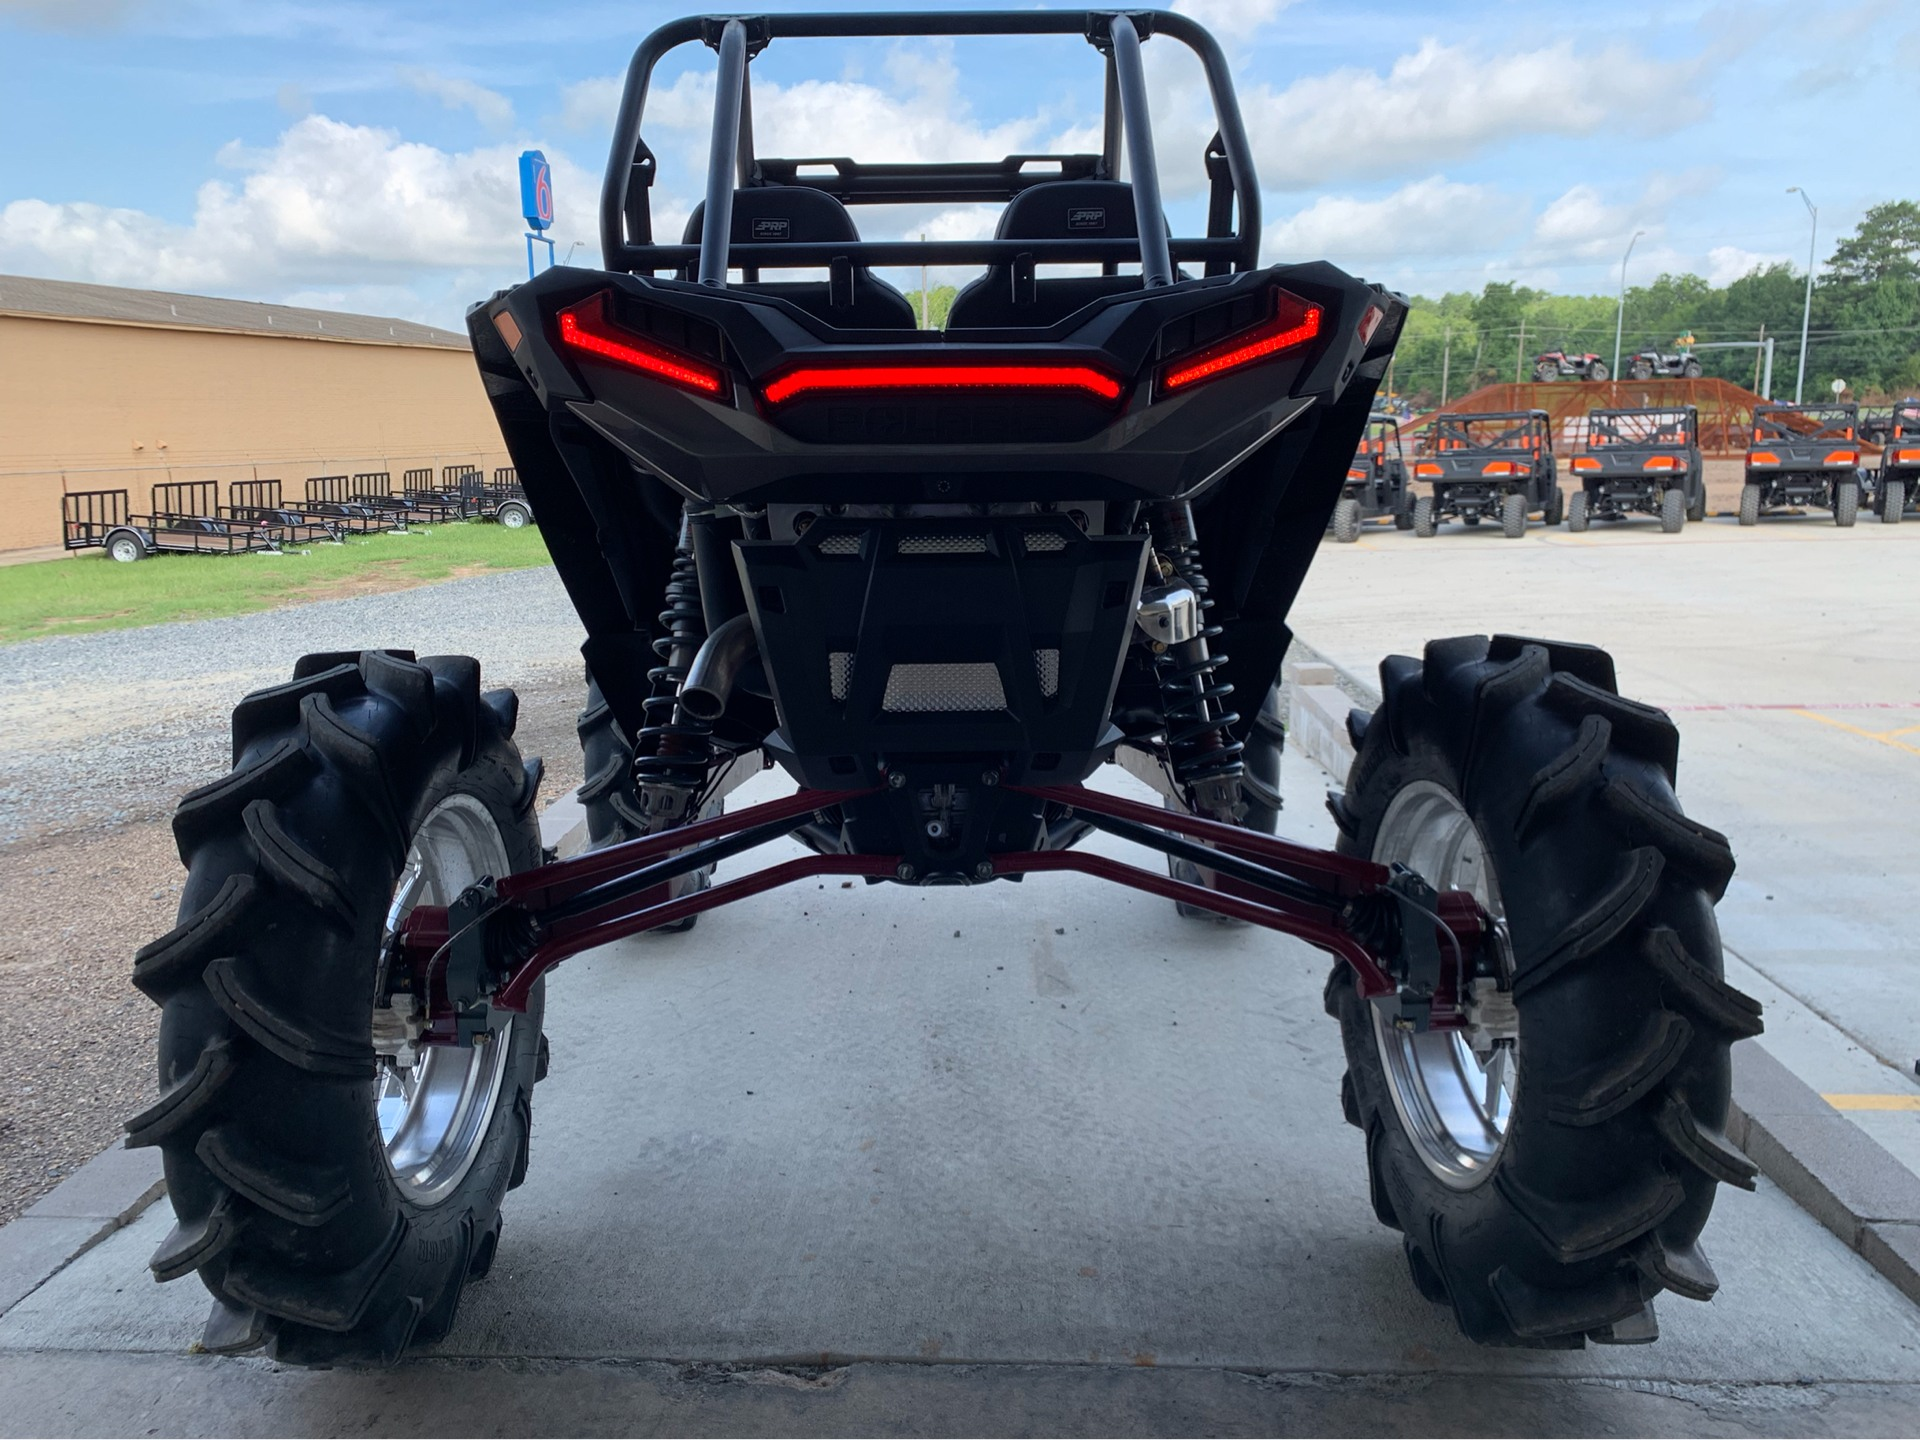 New 2019 Polaris RZR XP 1000 Ride Command Utility Vehicles